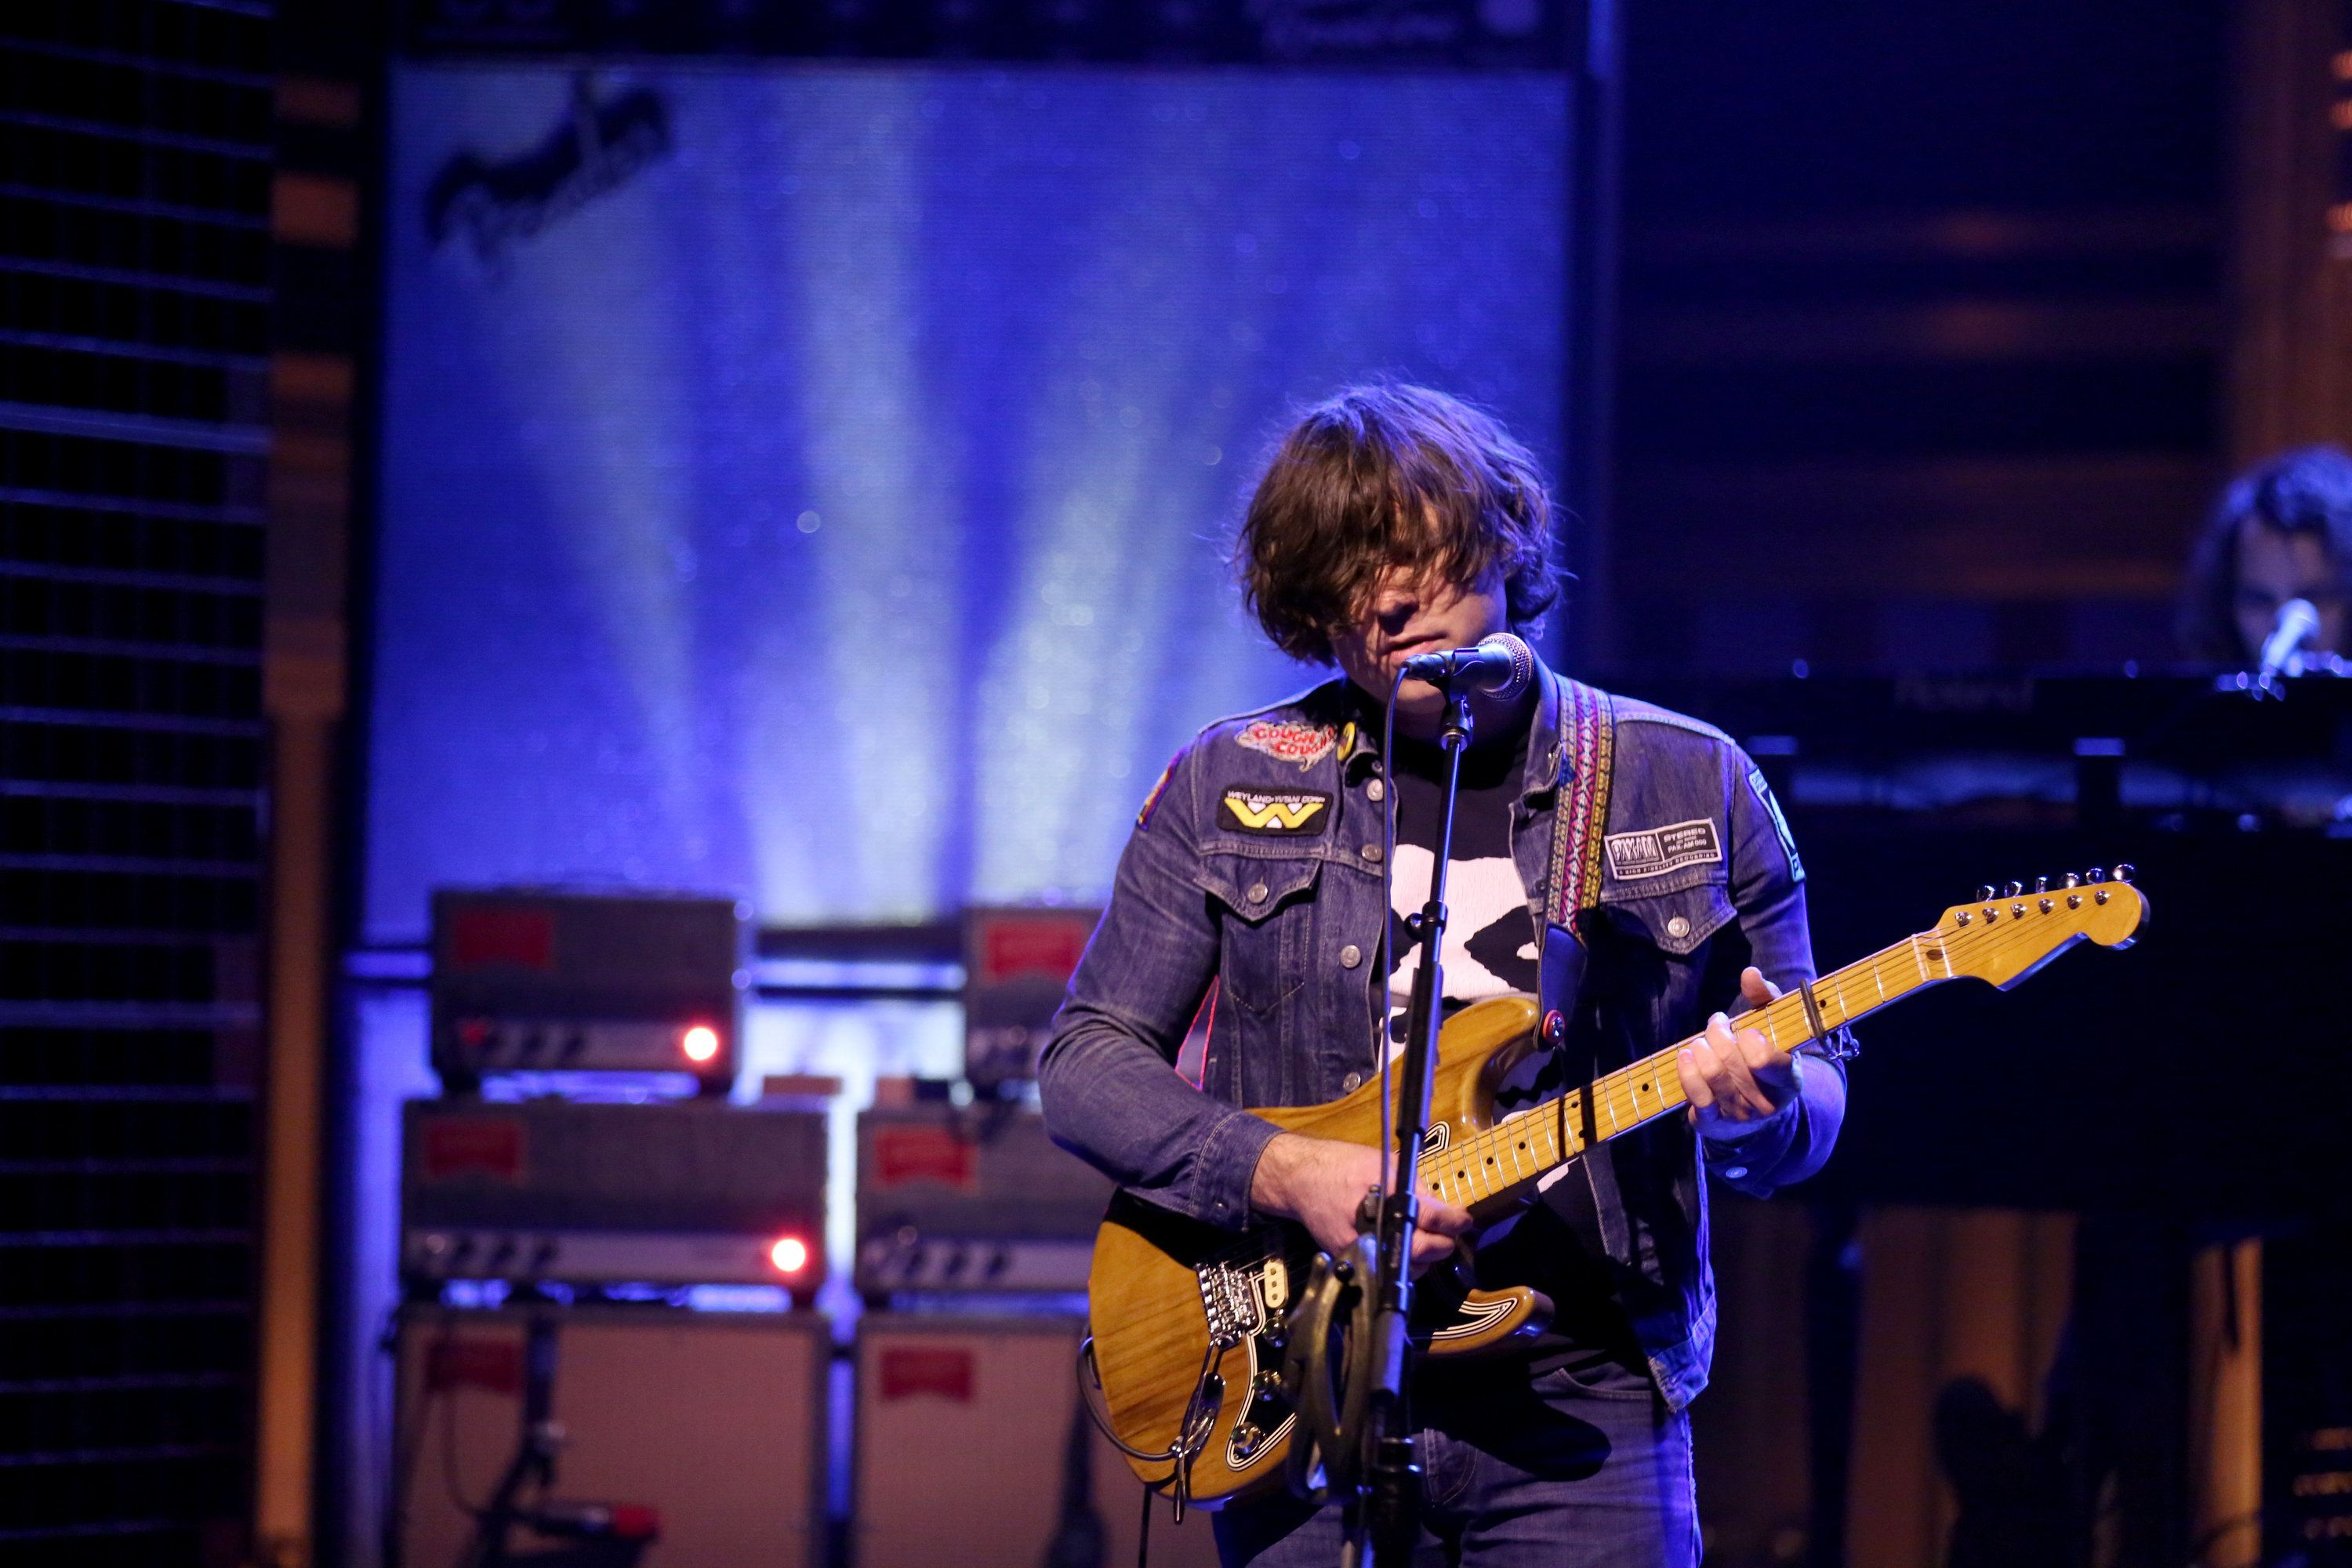 THE TONIGHT SHOW STARRING JIMMY FALLON -- Episode 0627 -- Pictured: Musical guest Ryan Adams performs on February 17, 2017 -- (Photo by: Andrew Lipovsky/NBC/NBCU Photo Bank via Getty Images))